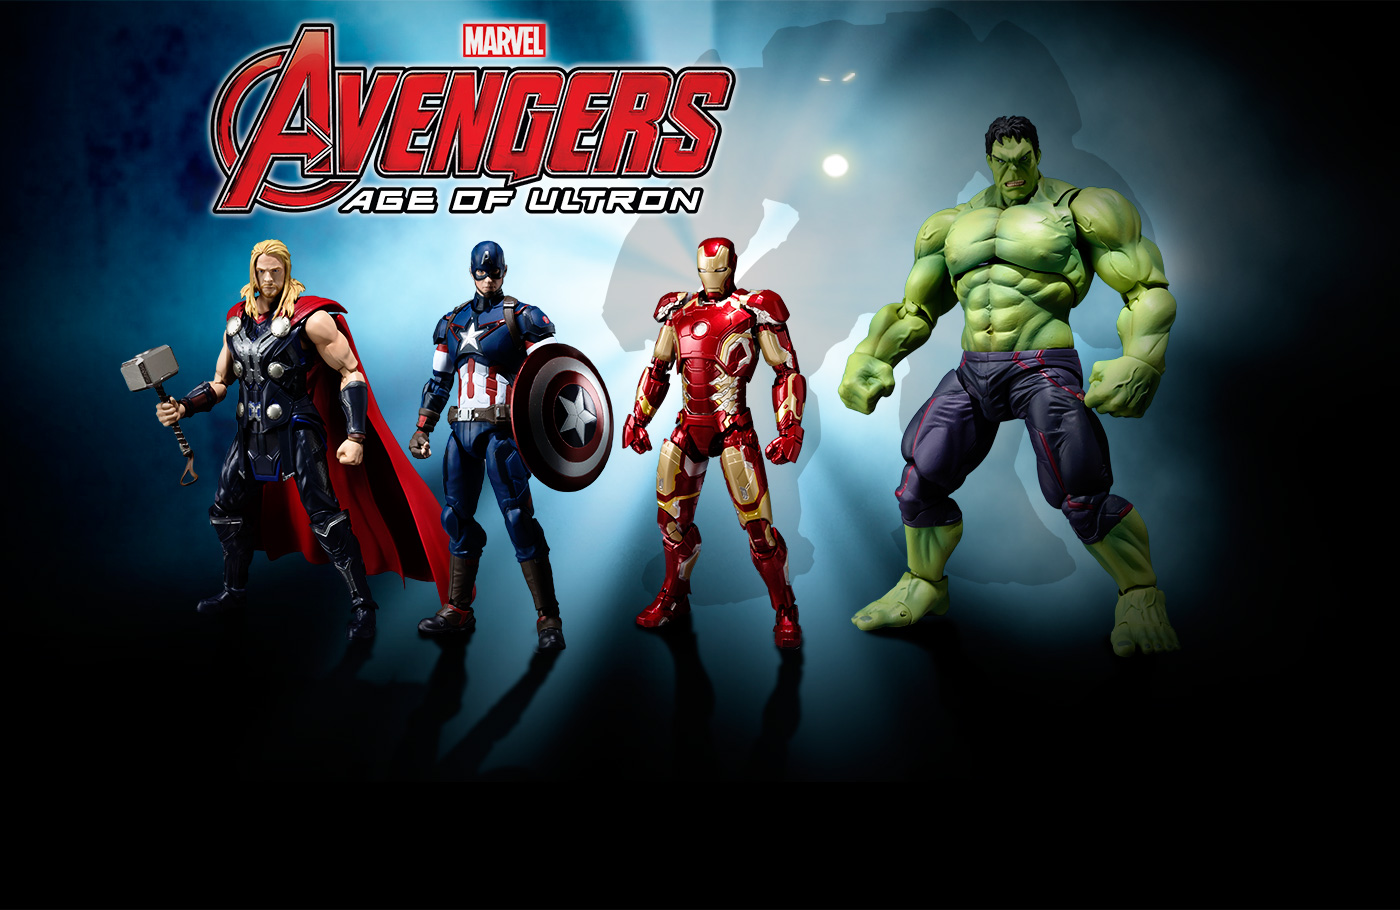 New Photos for SH Figuarts Avengers Age of Ultron Figures ...